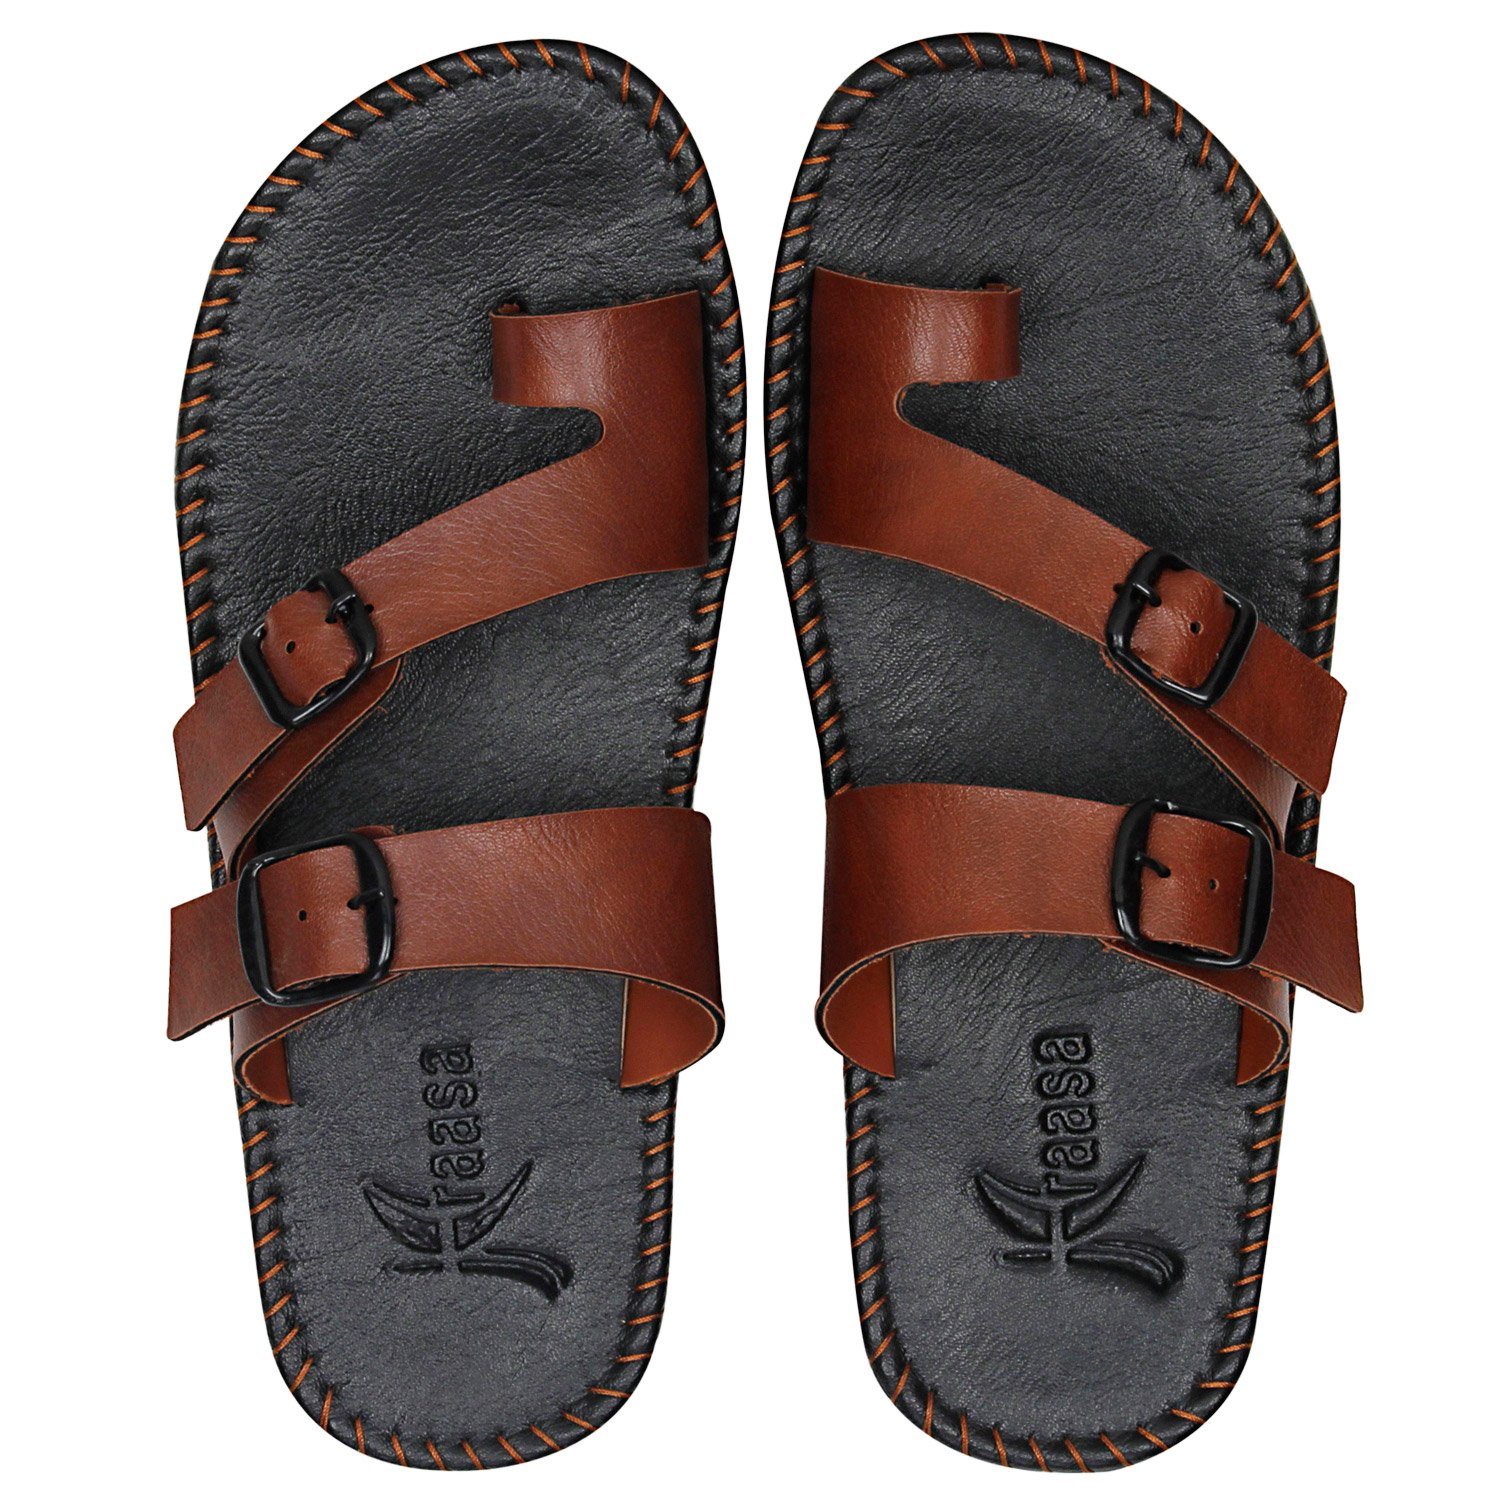 8f09e2aec66a4e Kraasa Men s Outdoor Sandals  Buy Online at Low Prices in India - Amazon.in